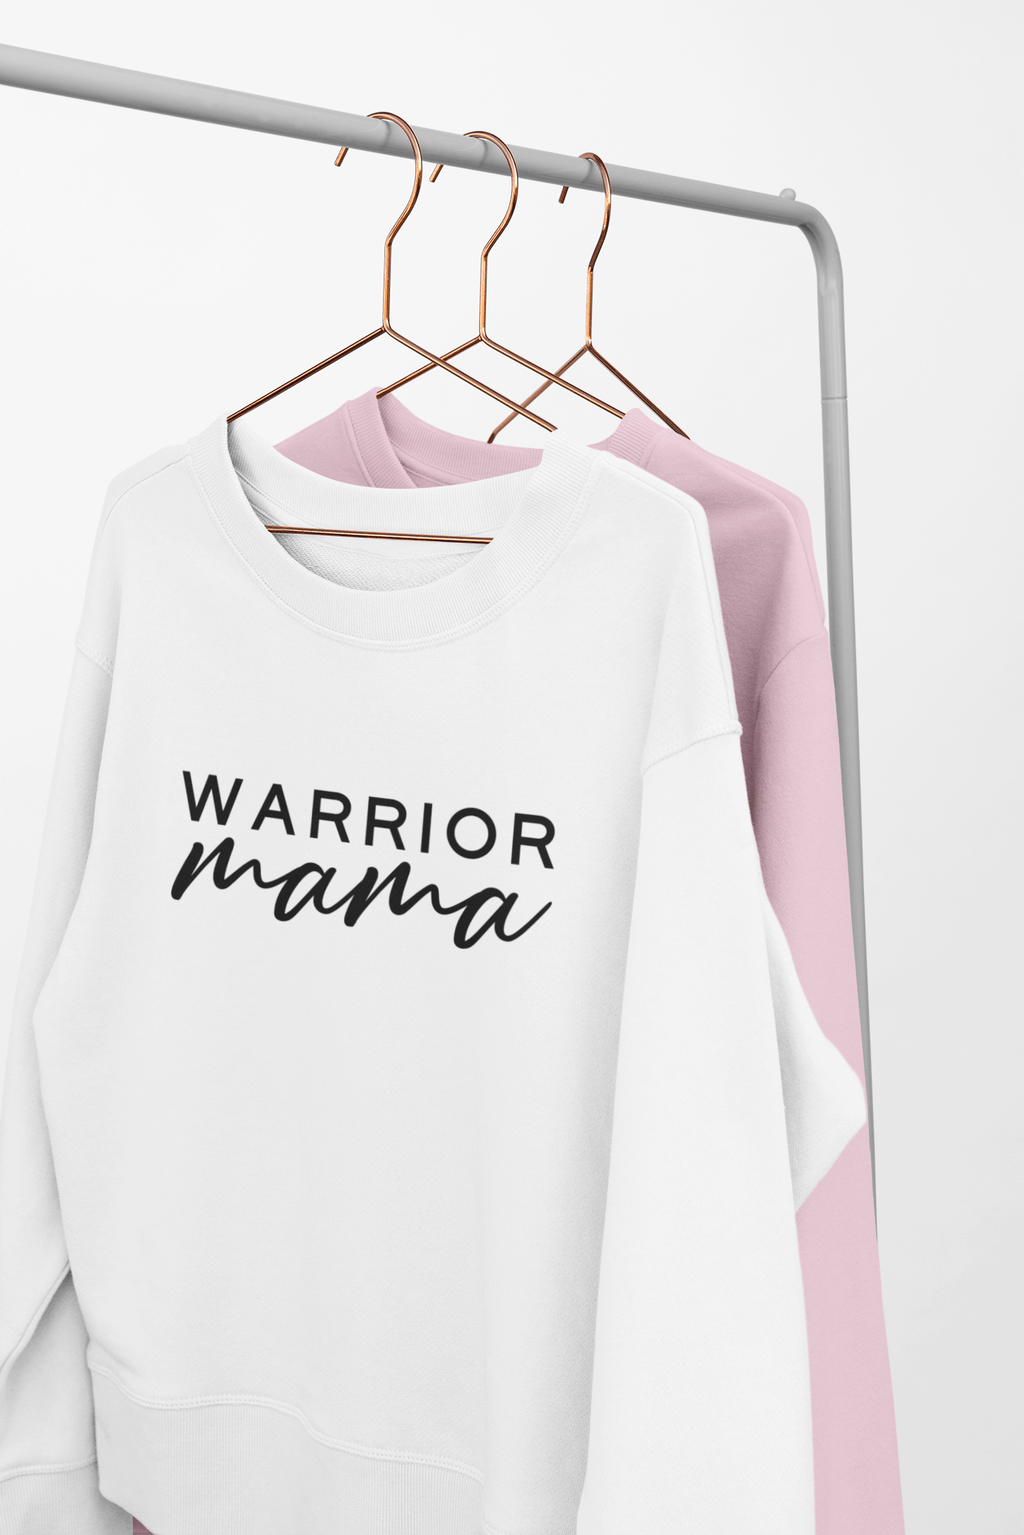 Chronic Illness Warrior Mama Sweatshirt